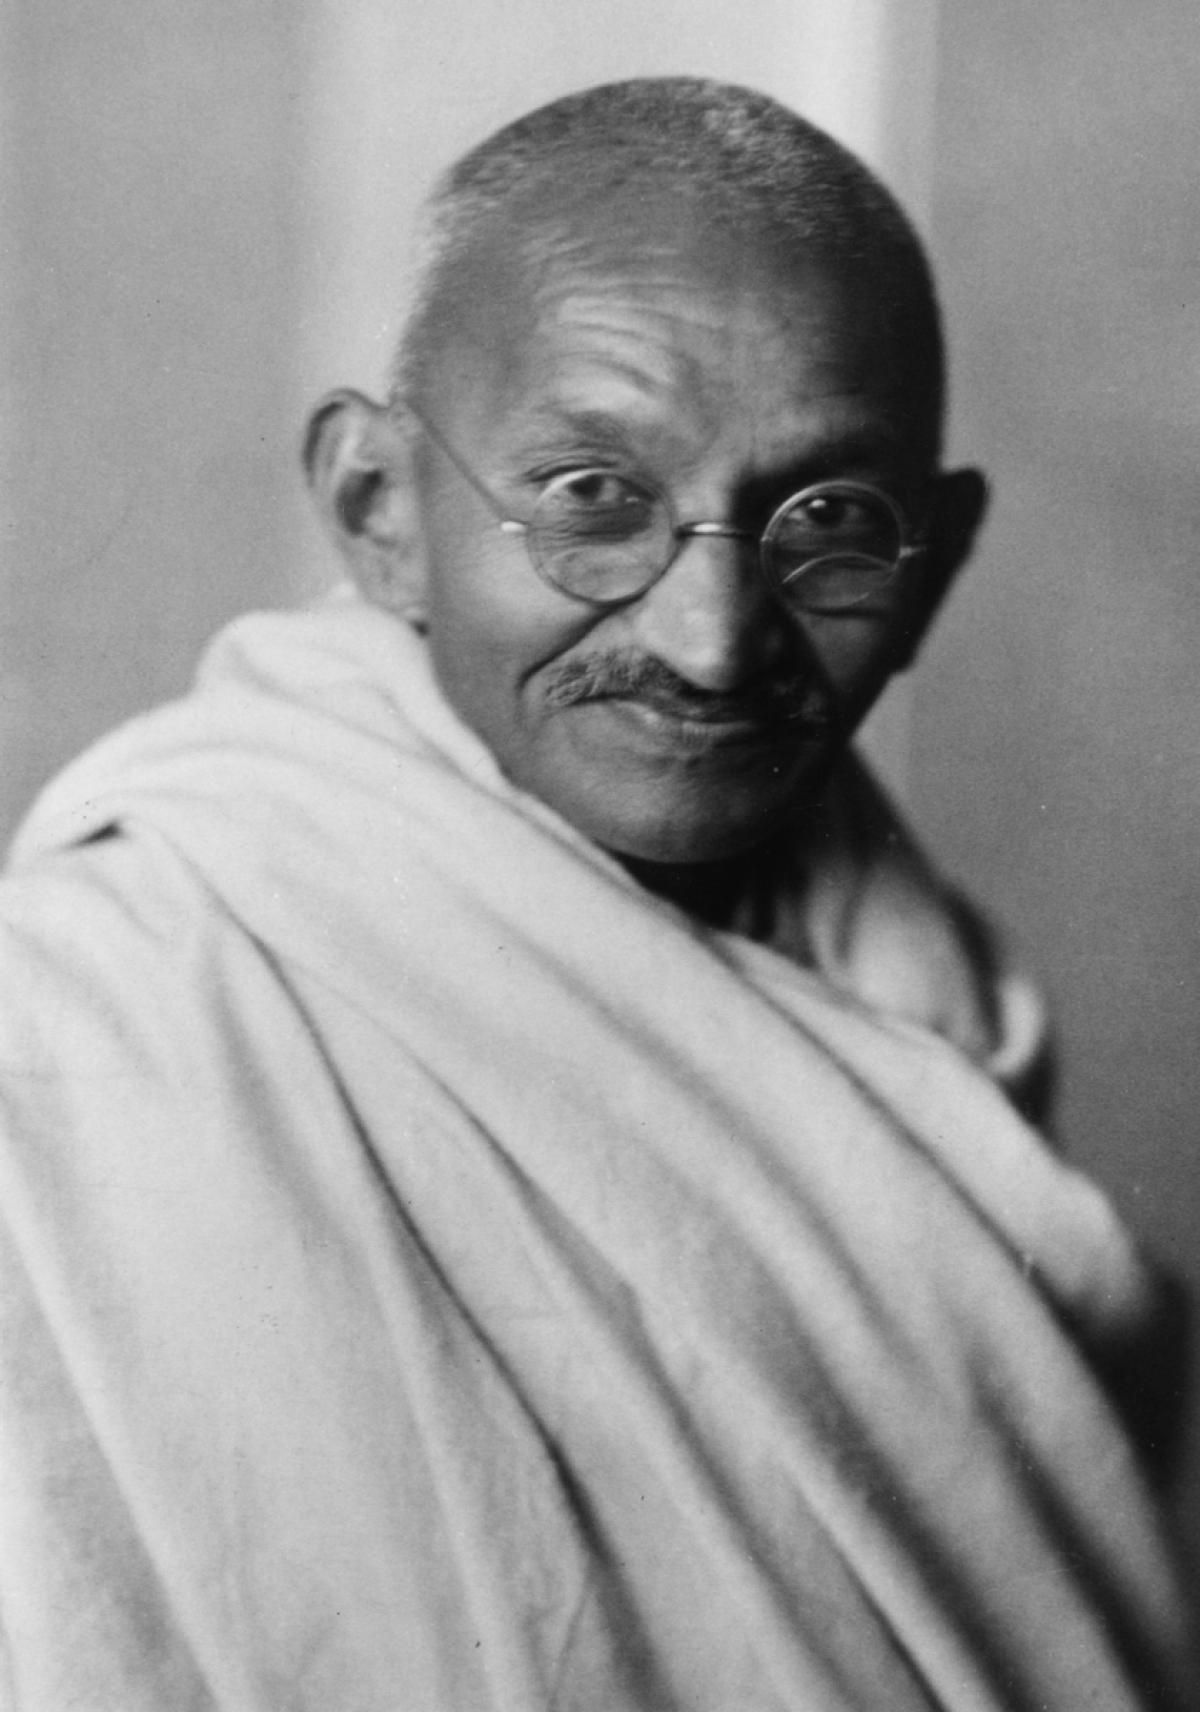 On Jan. 30, 1948, Mohandas 'Mahatma' Gandhi, leader of the